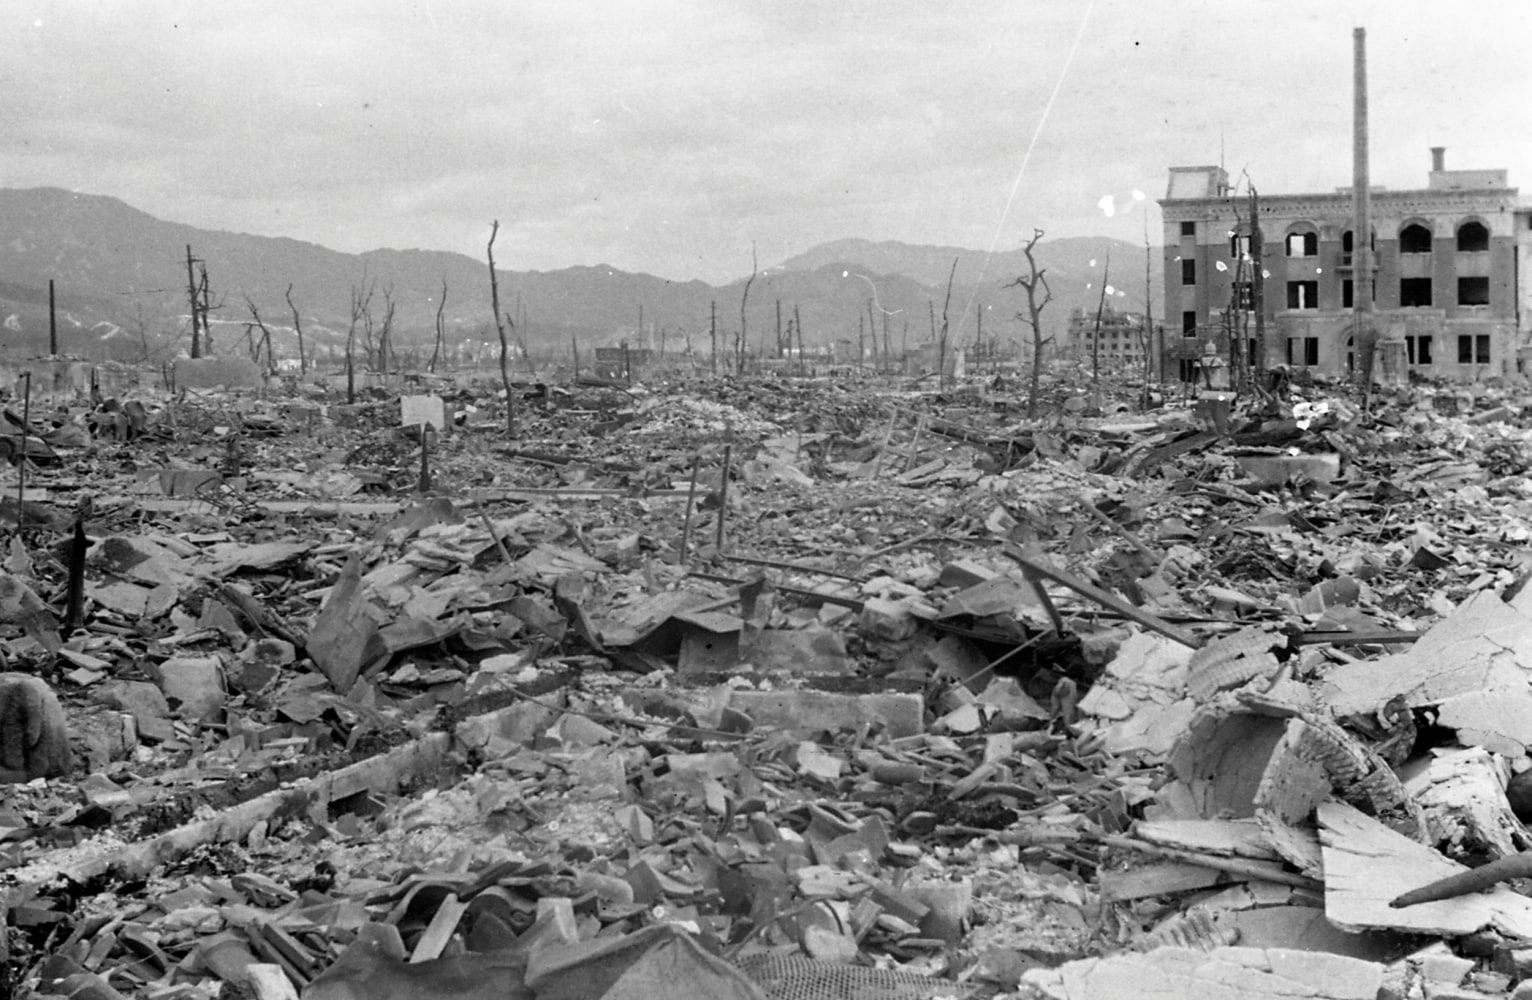 hiroshima and nagasaki photo essay Works cited a photo-essay on the bombing of hiroshima and nagasaki a photo-essay on the bombing of hiroshima and nagasaki a photo-essay on the bombing of hiroshima and nagasaki a photo-essay on the bombing of hiroshima and nagasaki.